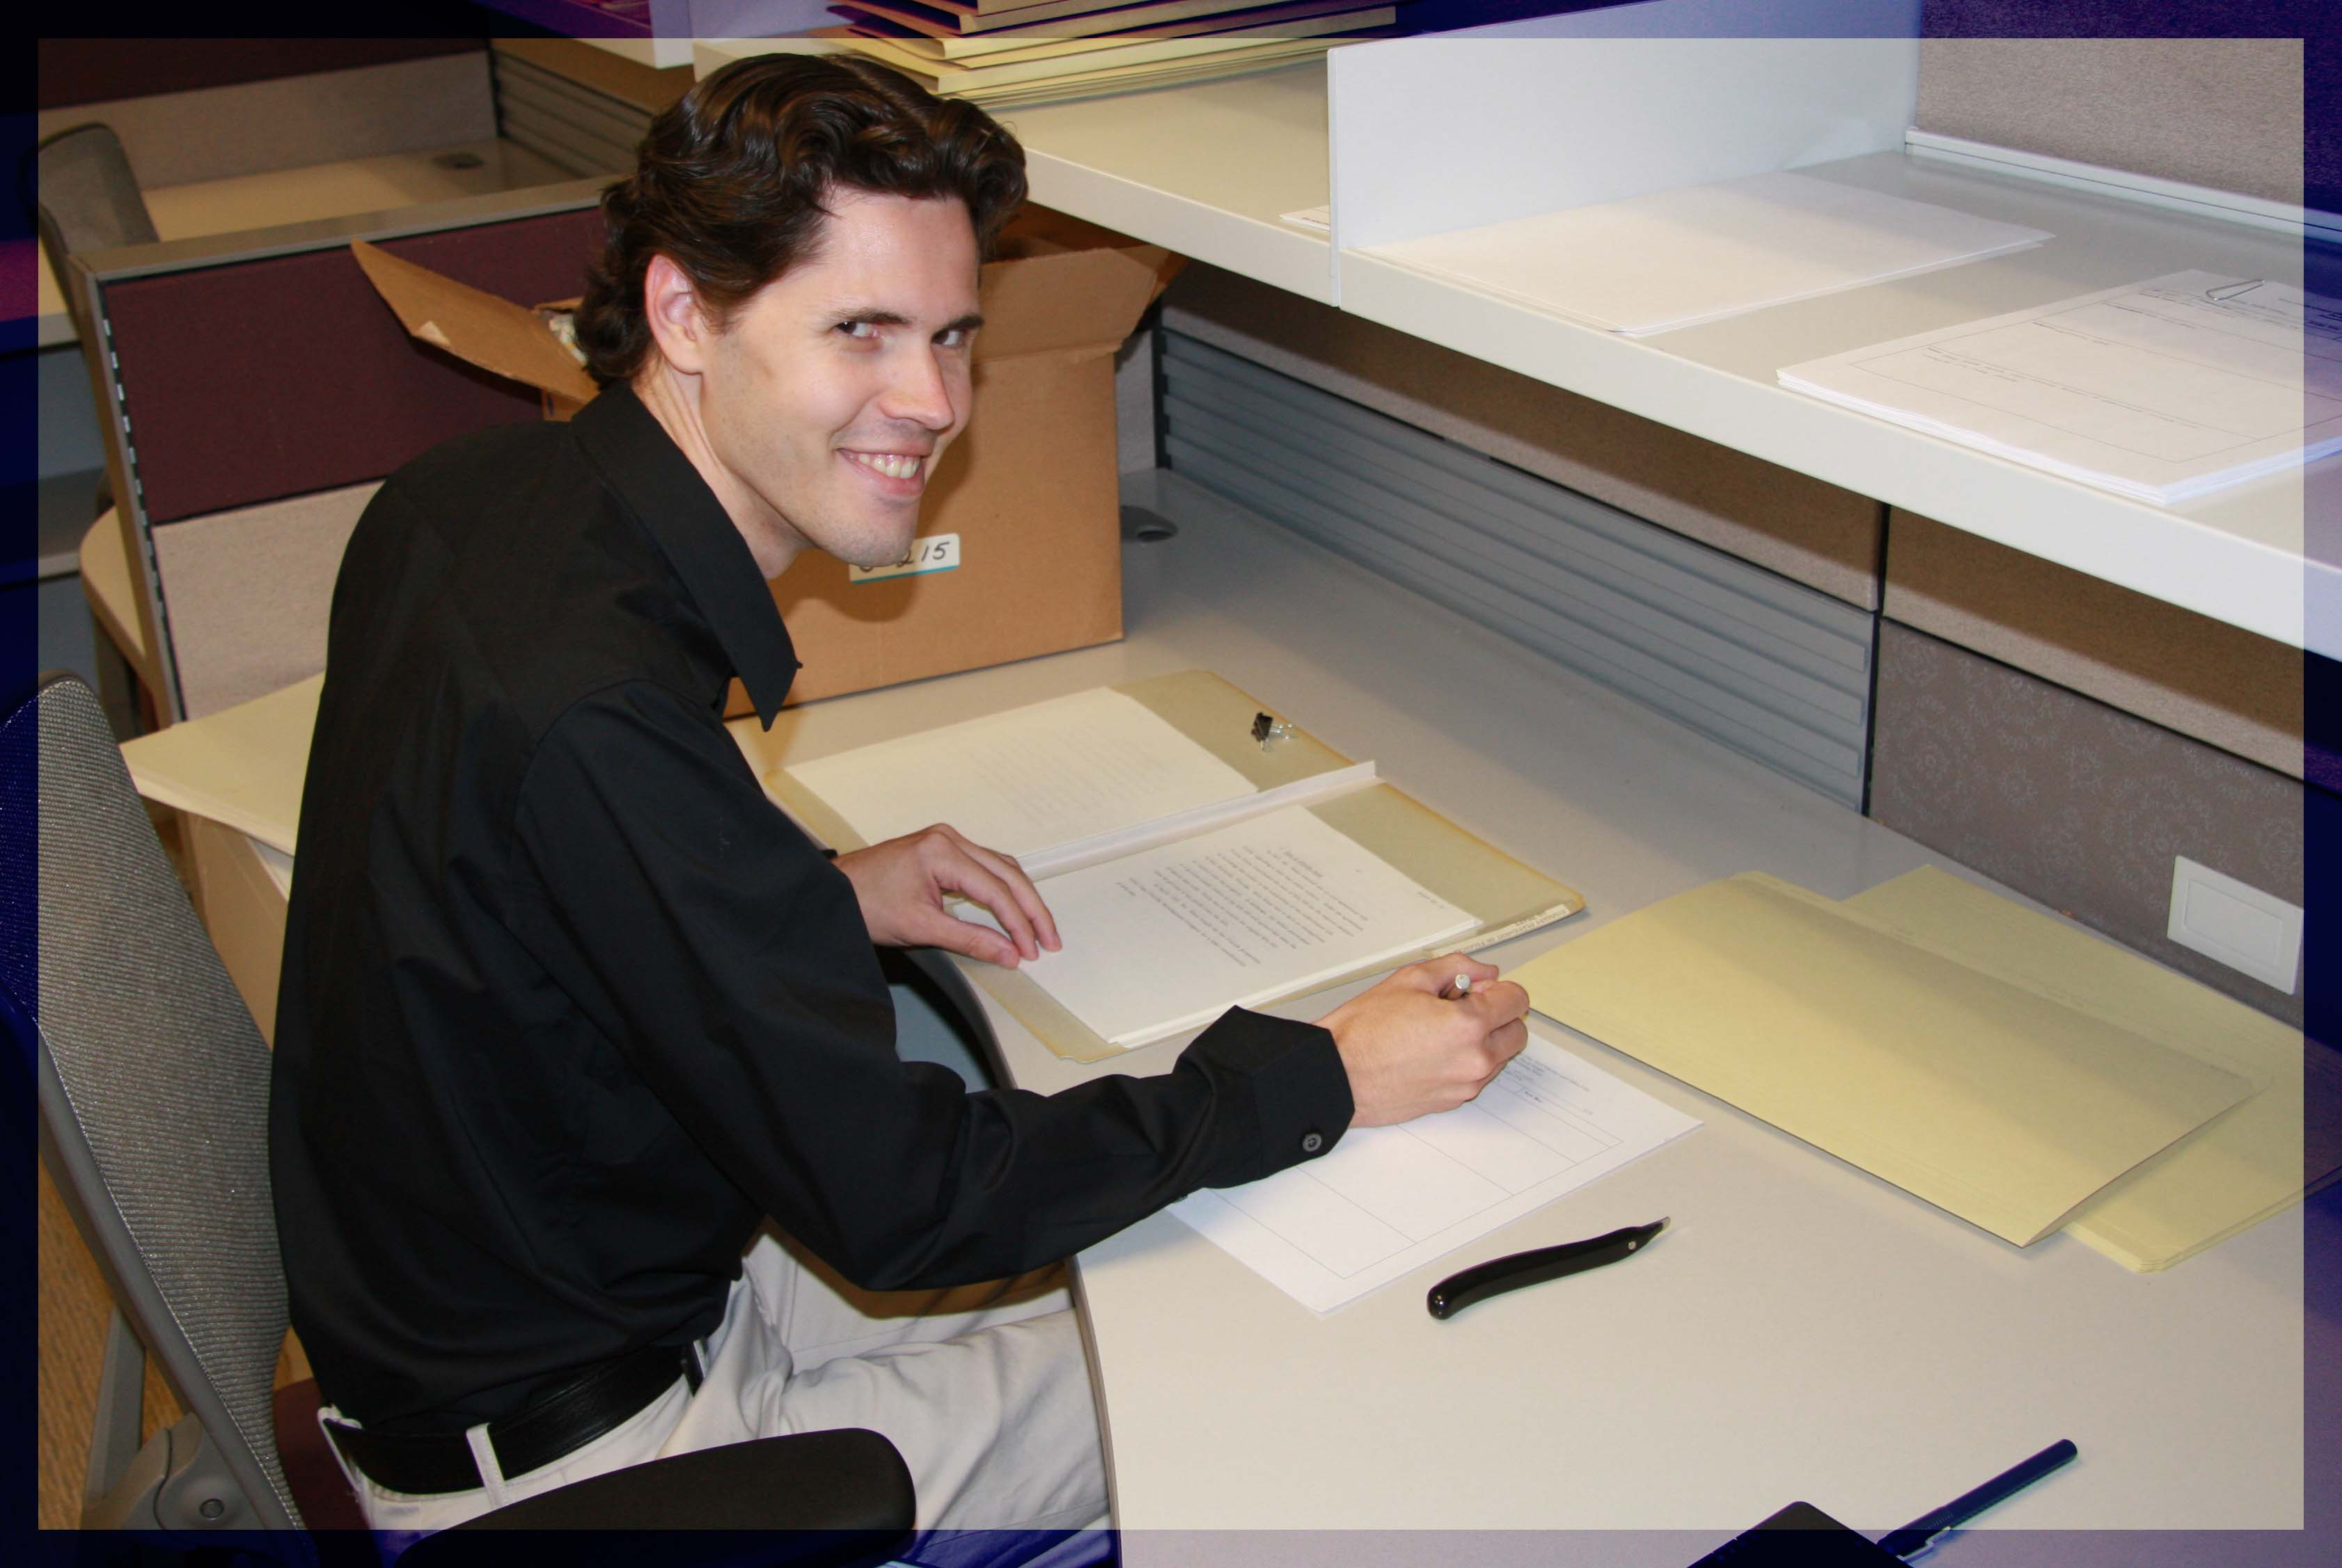 Jason Schultz, archivist at the Richard Nixon Presidential Library